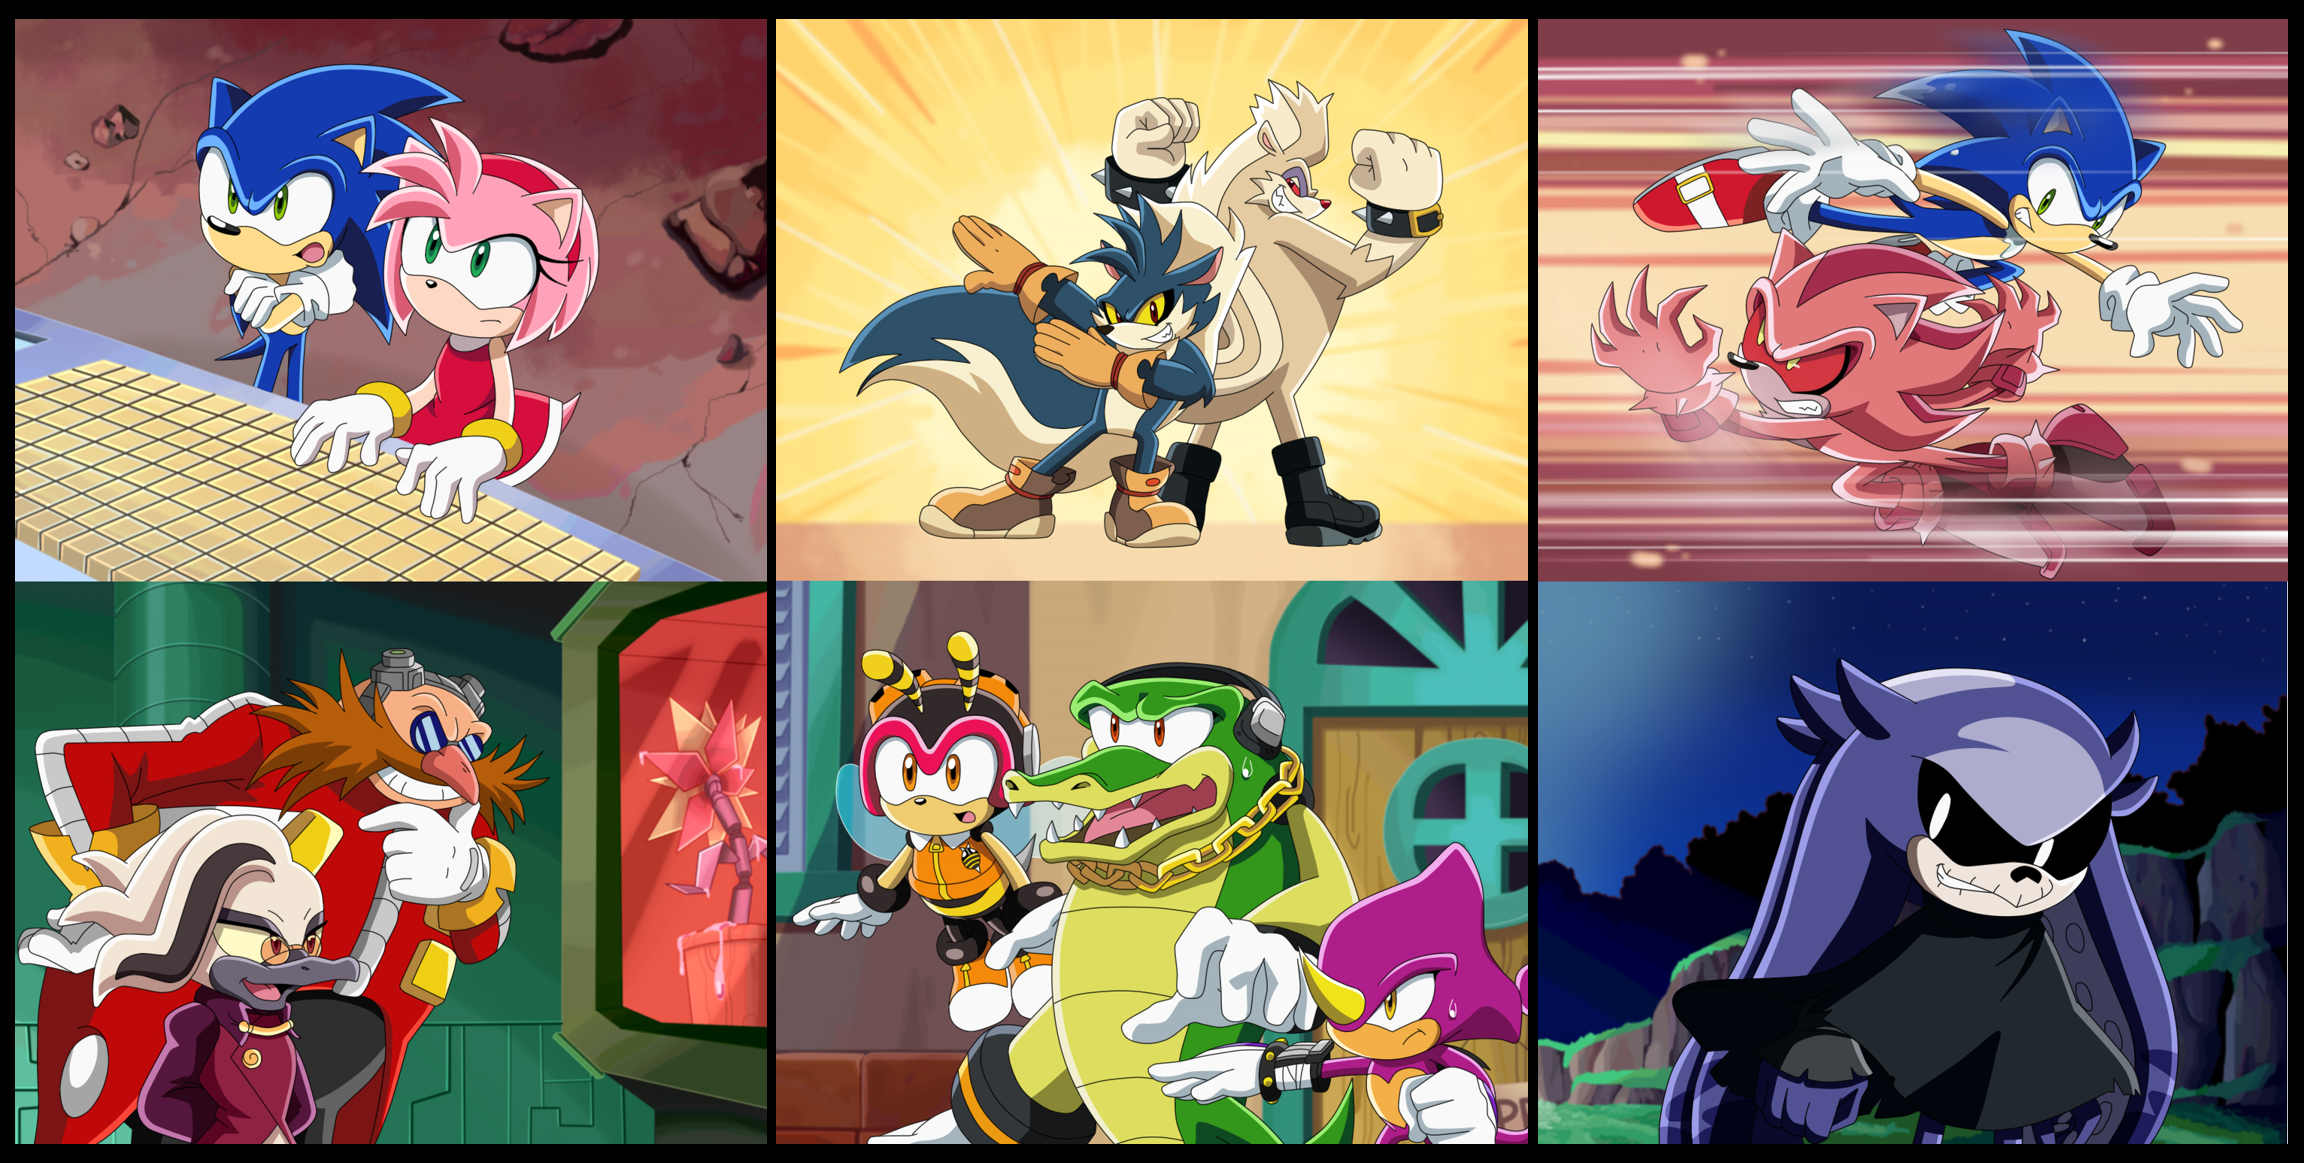 Some Scenes From Idw Comic In Sonic X Style Sonic The Hedgehog Know Your Meme